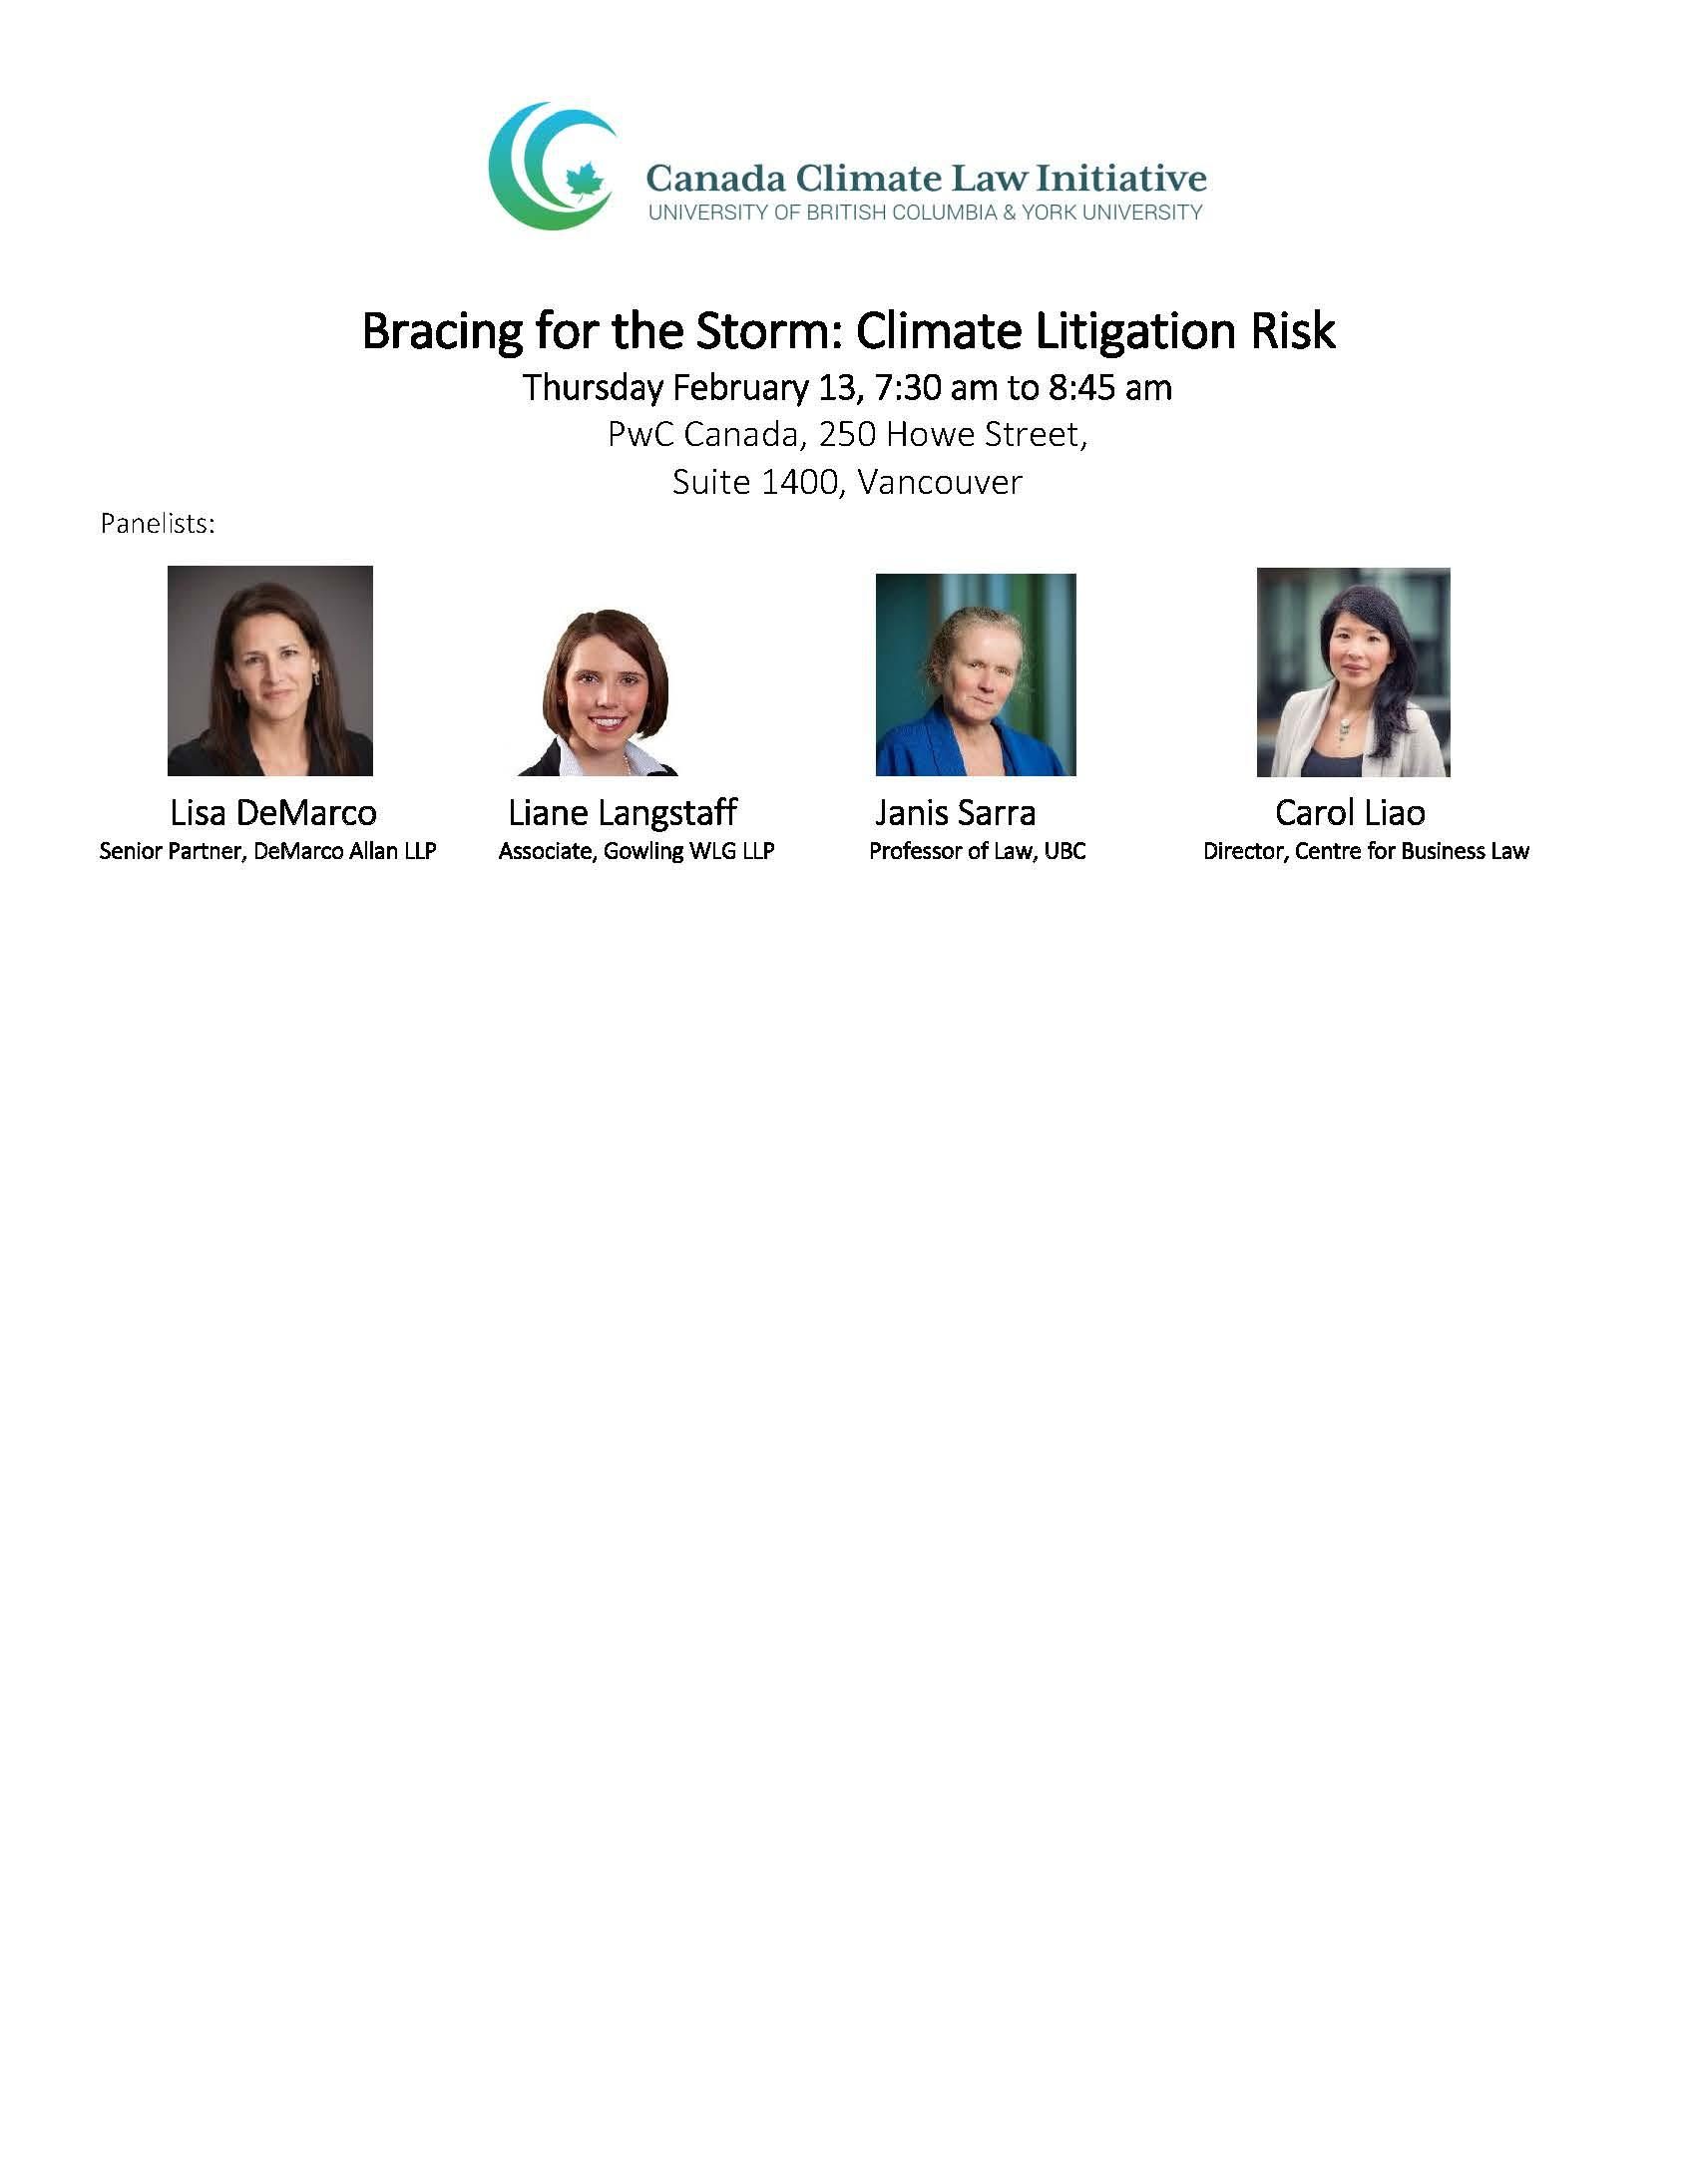 Bracing for the Storm: Climate Litigation Risk (breakfast will be provided)